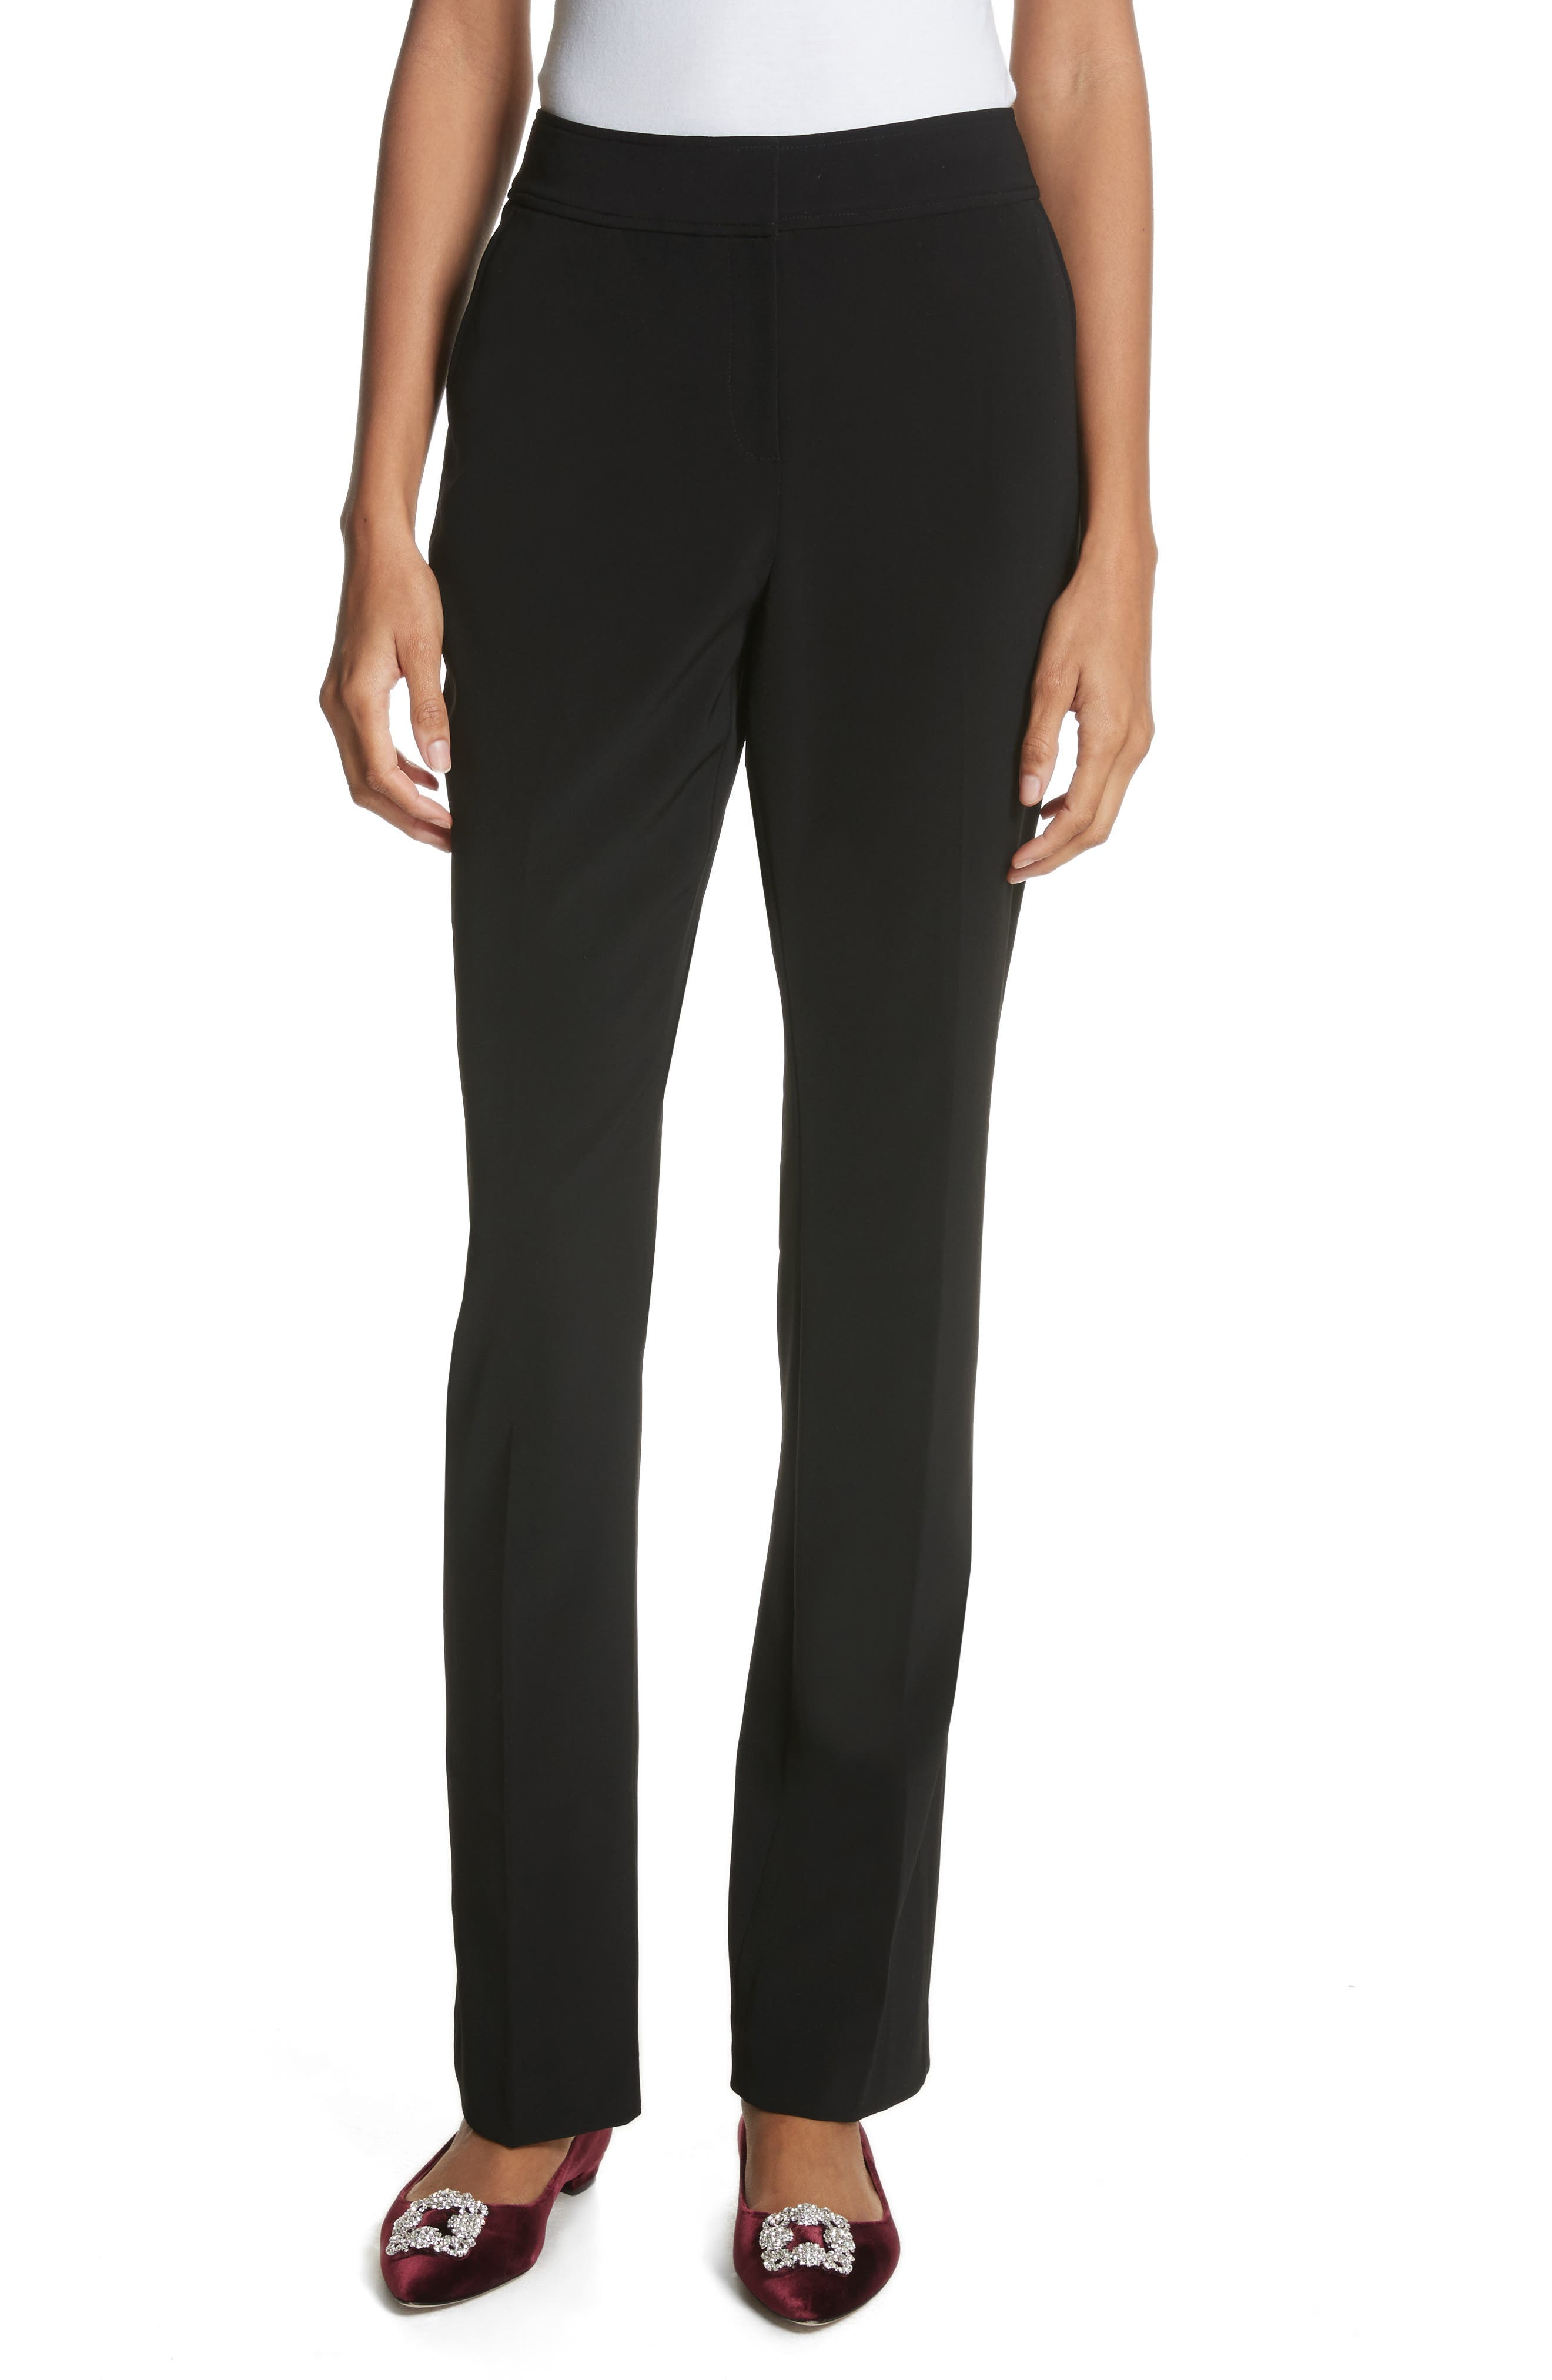 Yulit High Waist Trousers,                             Main thumbnail 1, color,                             Black